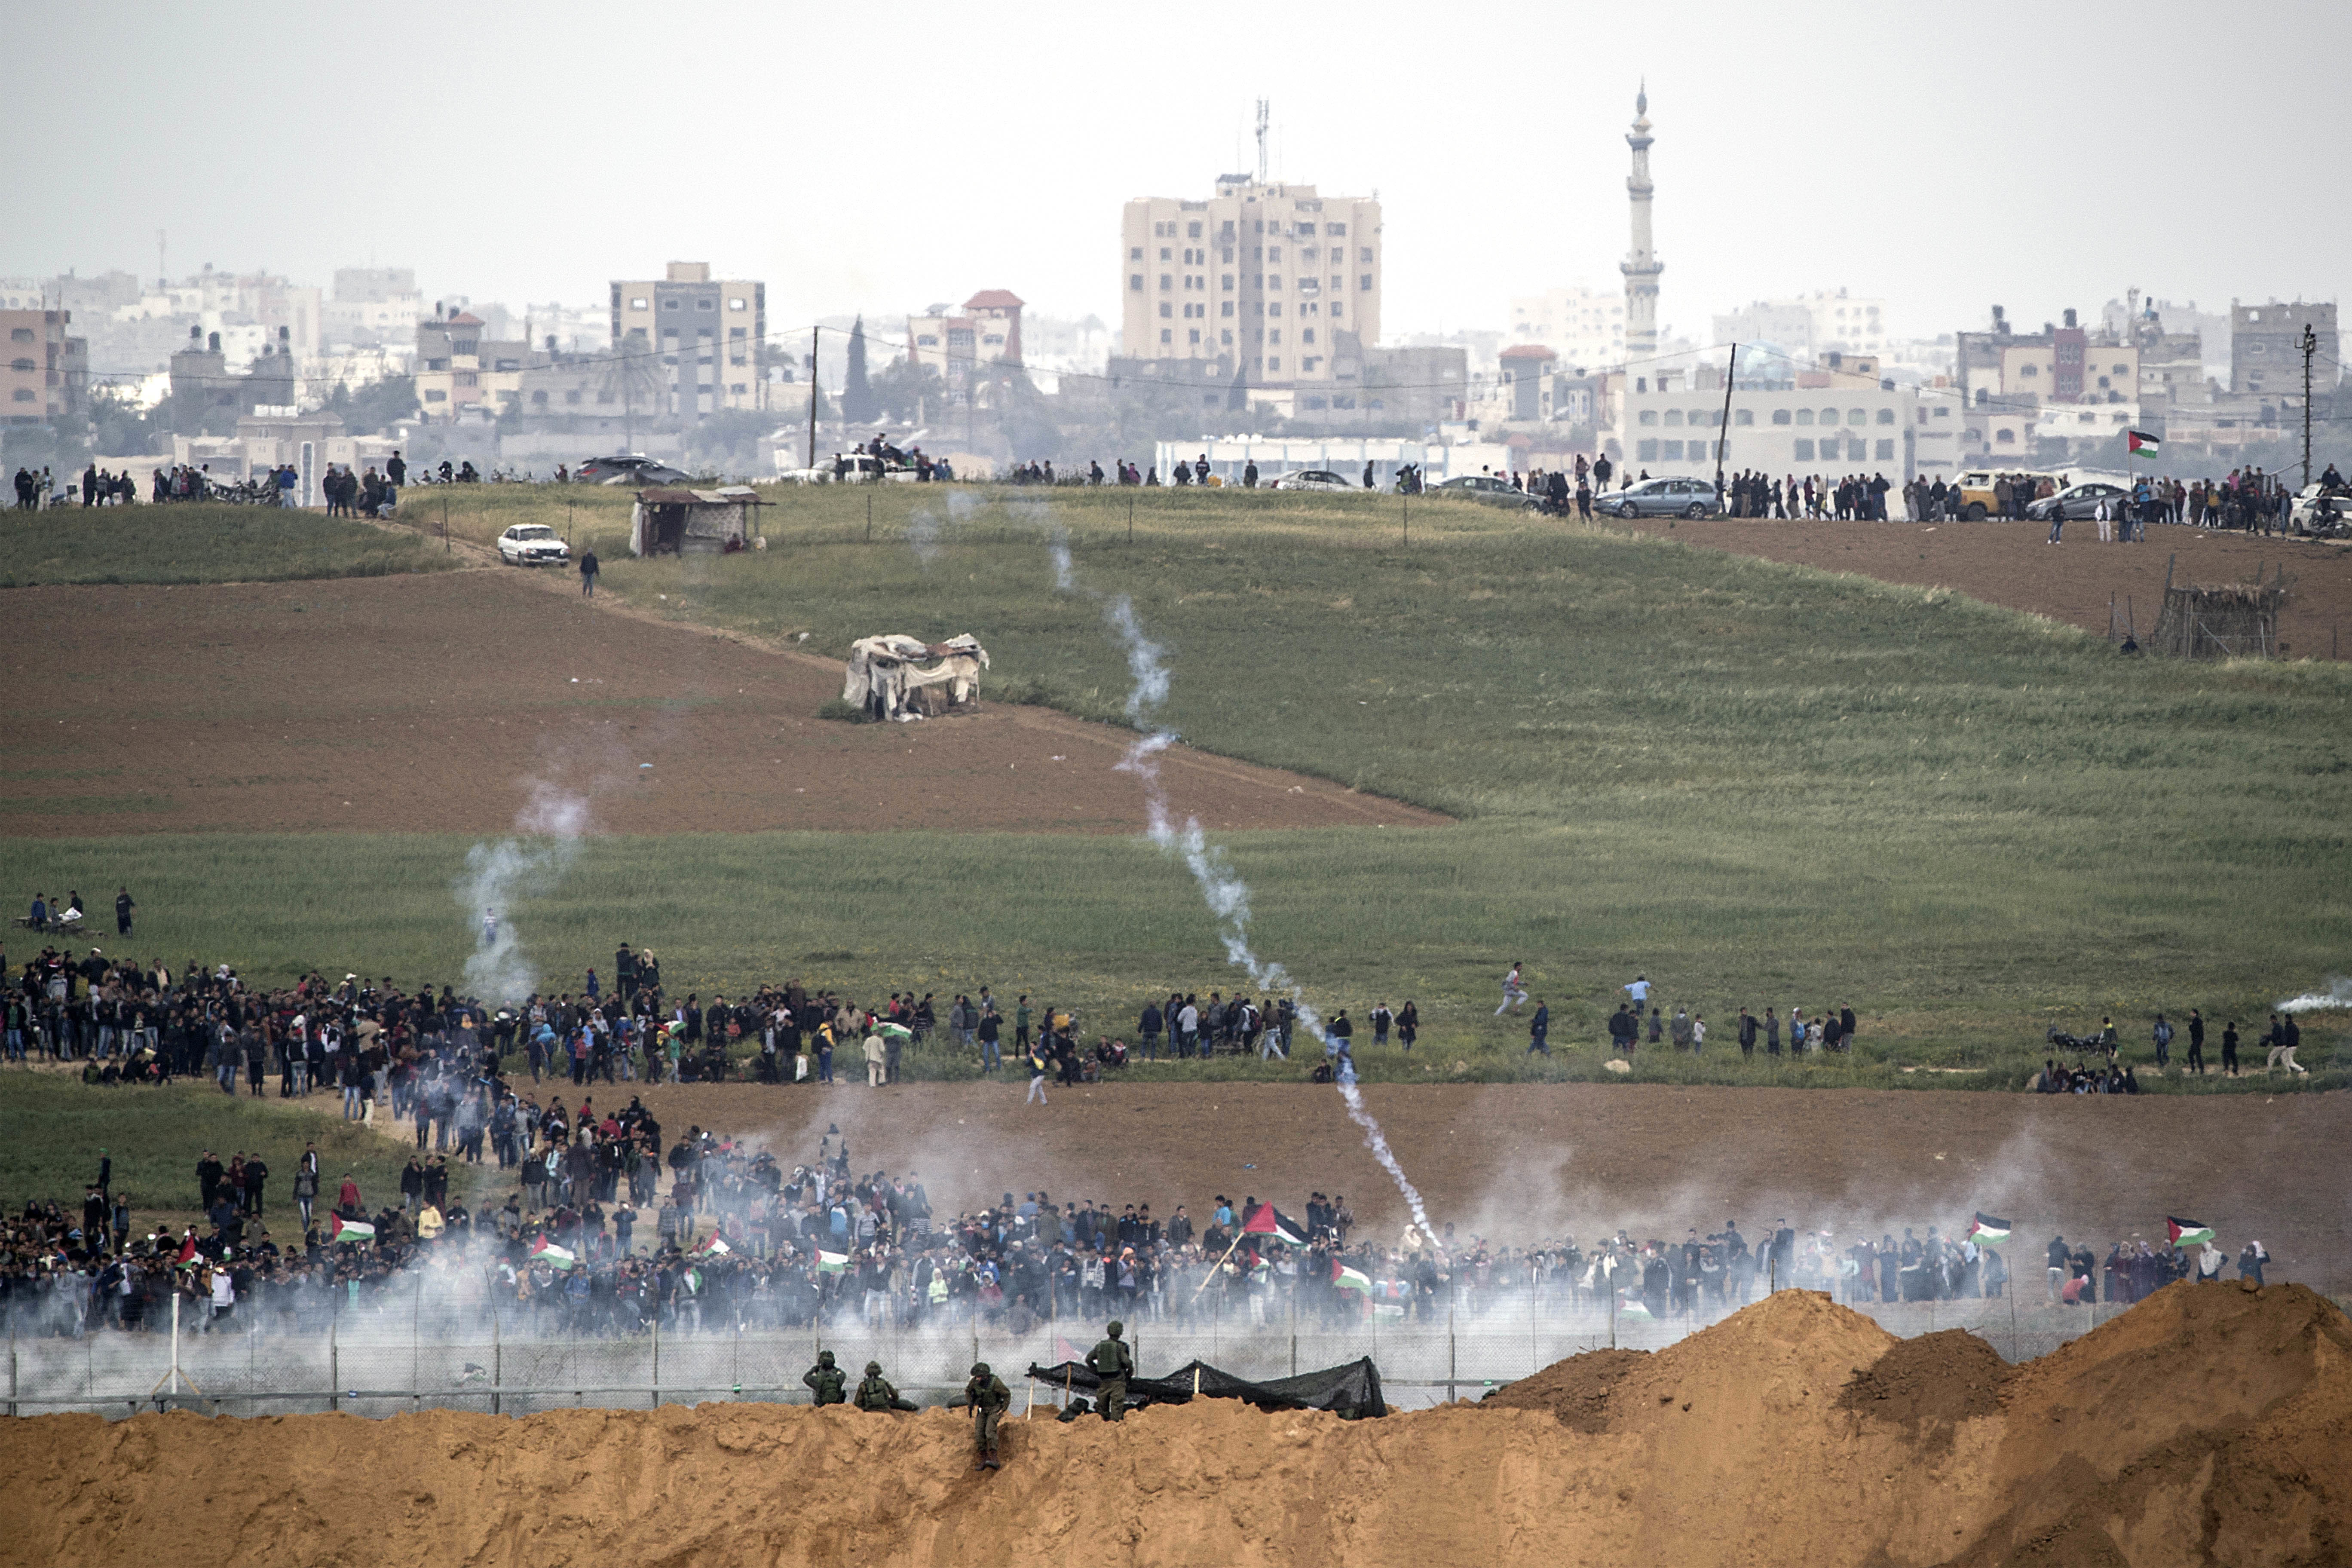 Israeli soldiers shoot tear gas toward Palestinian protesters as they gather on the Israel Gaza border, March 30, 2018.